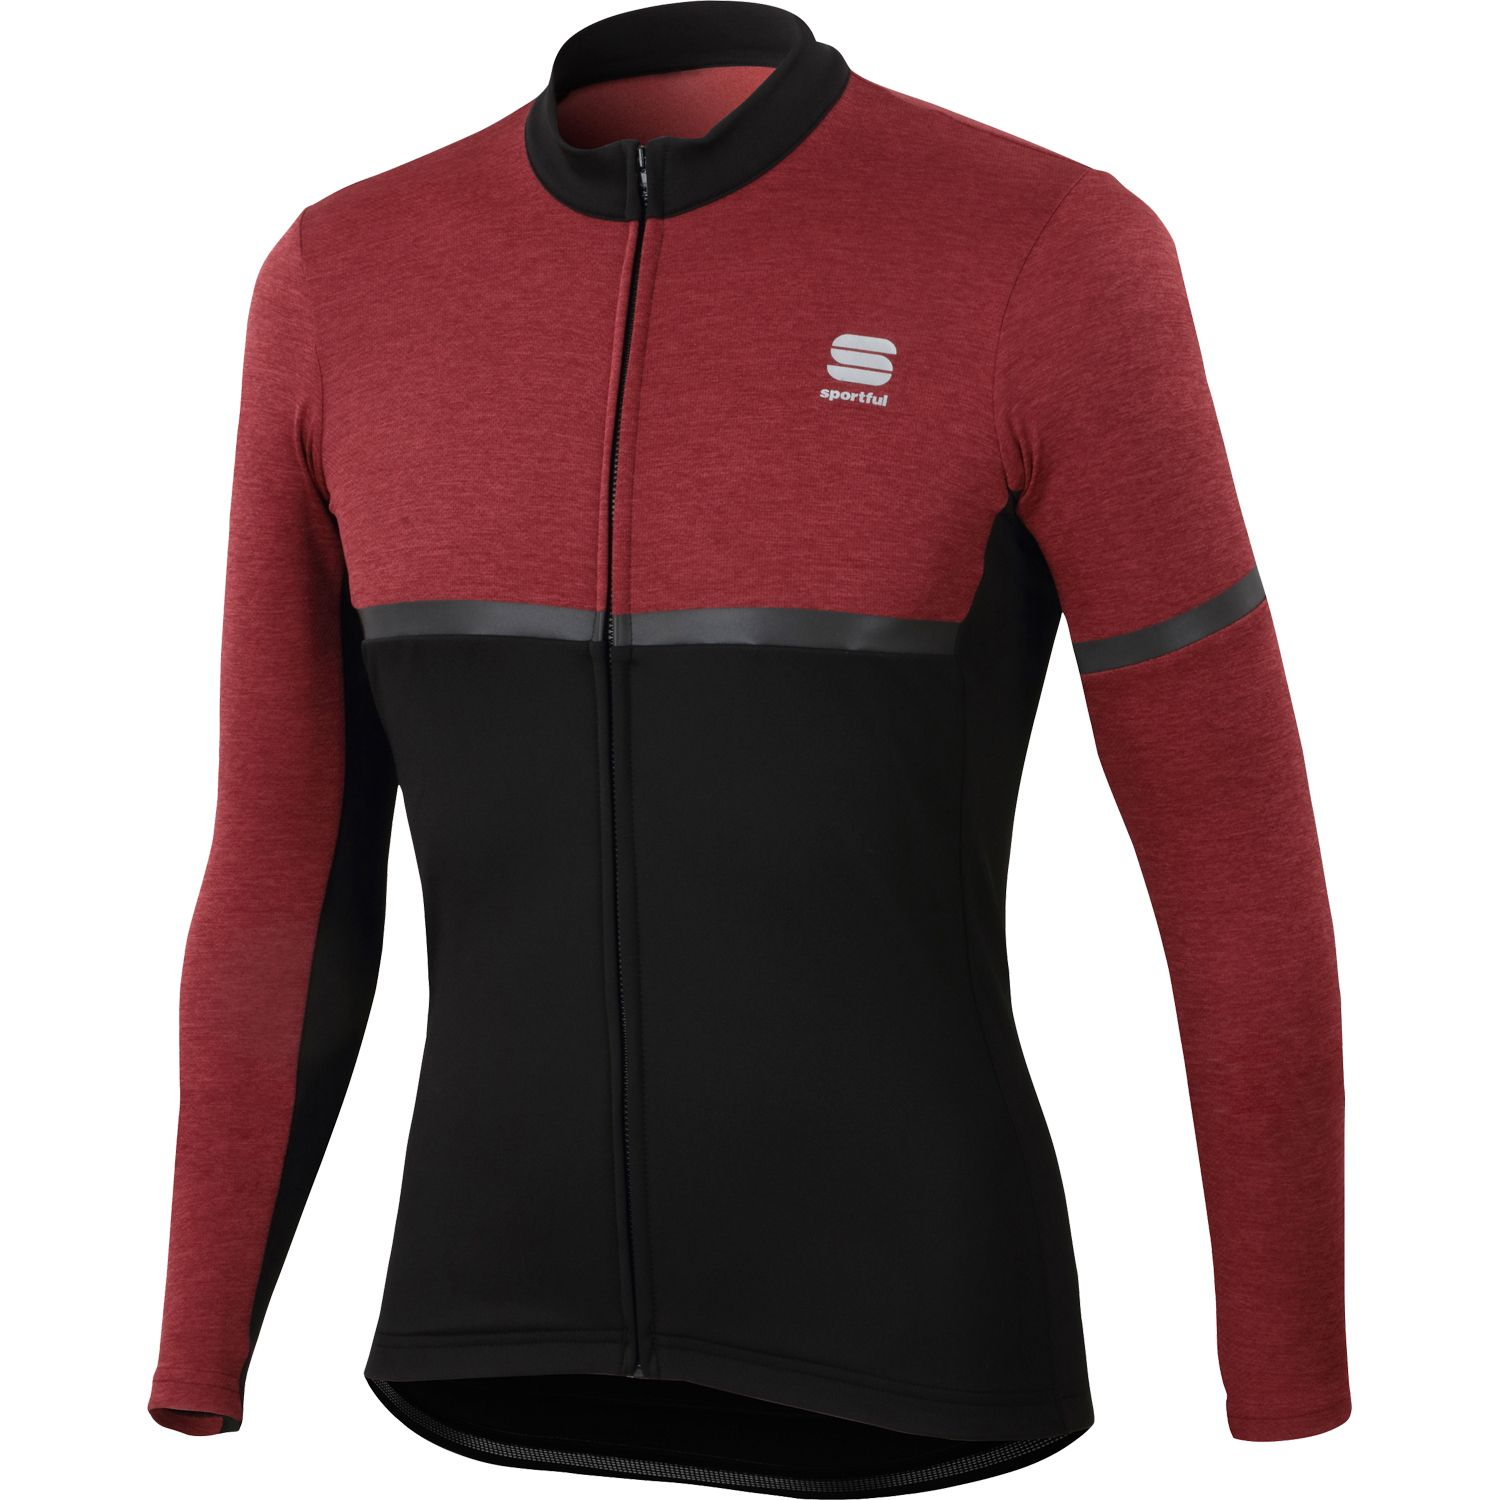 sporful giara warm top